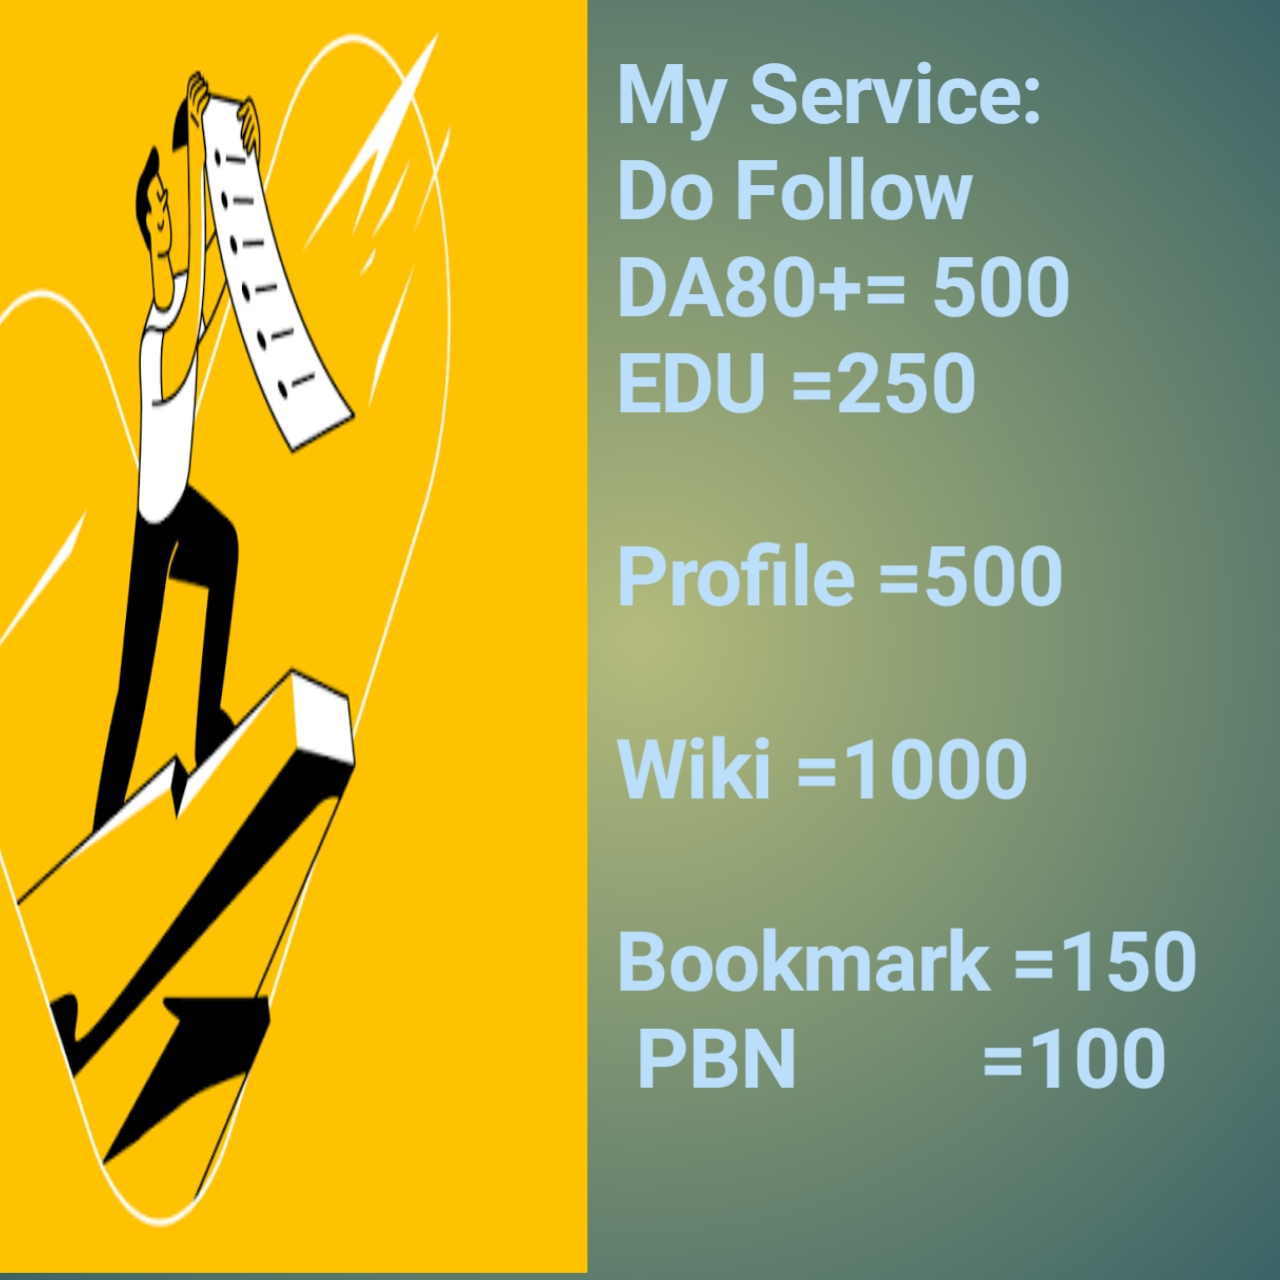 Do Follow DA80+500, EDU 250, Profile  500 Wiki  1000, Bookmark  150 PBN 100